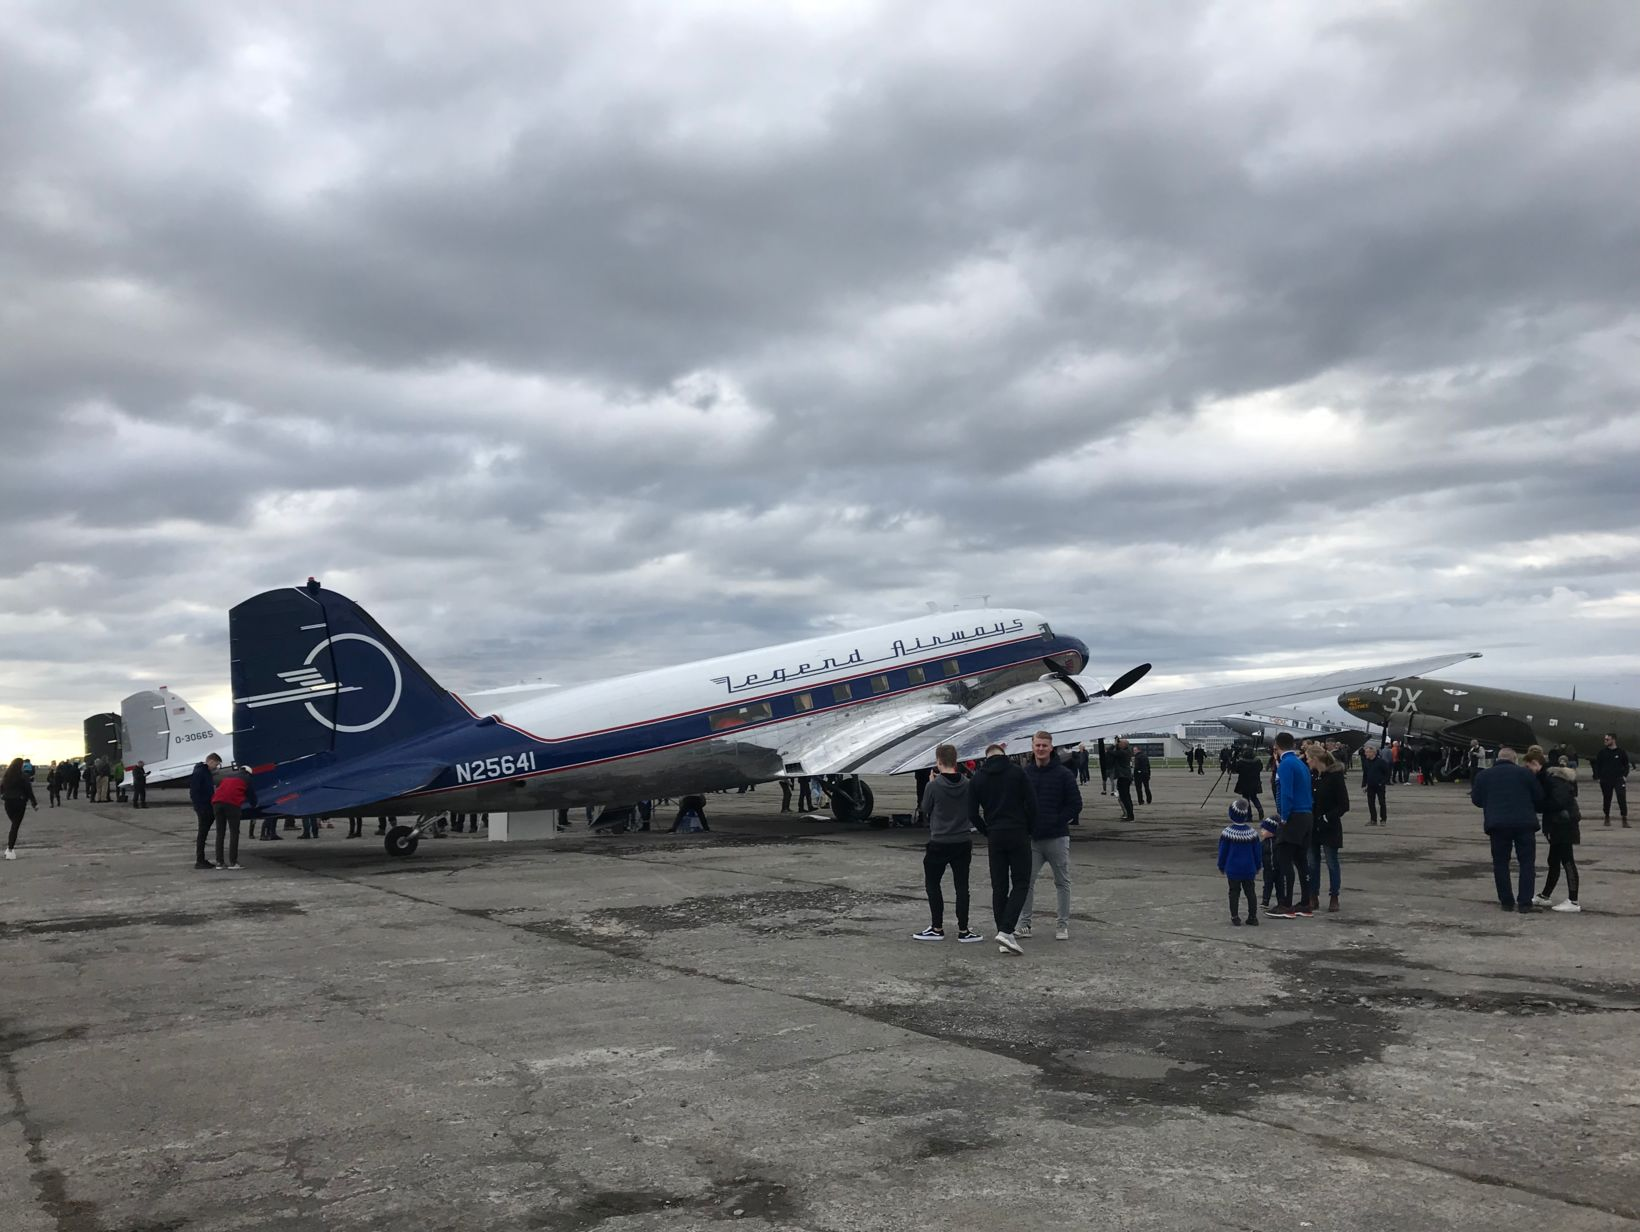 The DC-3/C-47 aircraft at Reykjavík Airport.